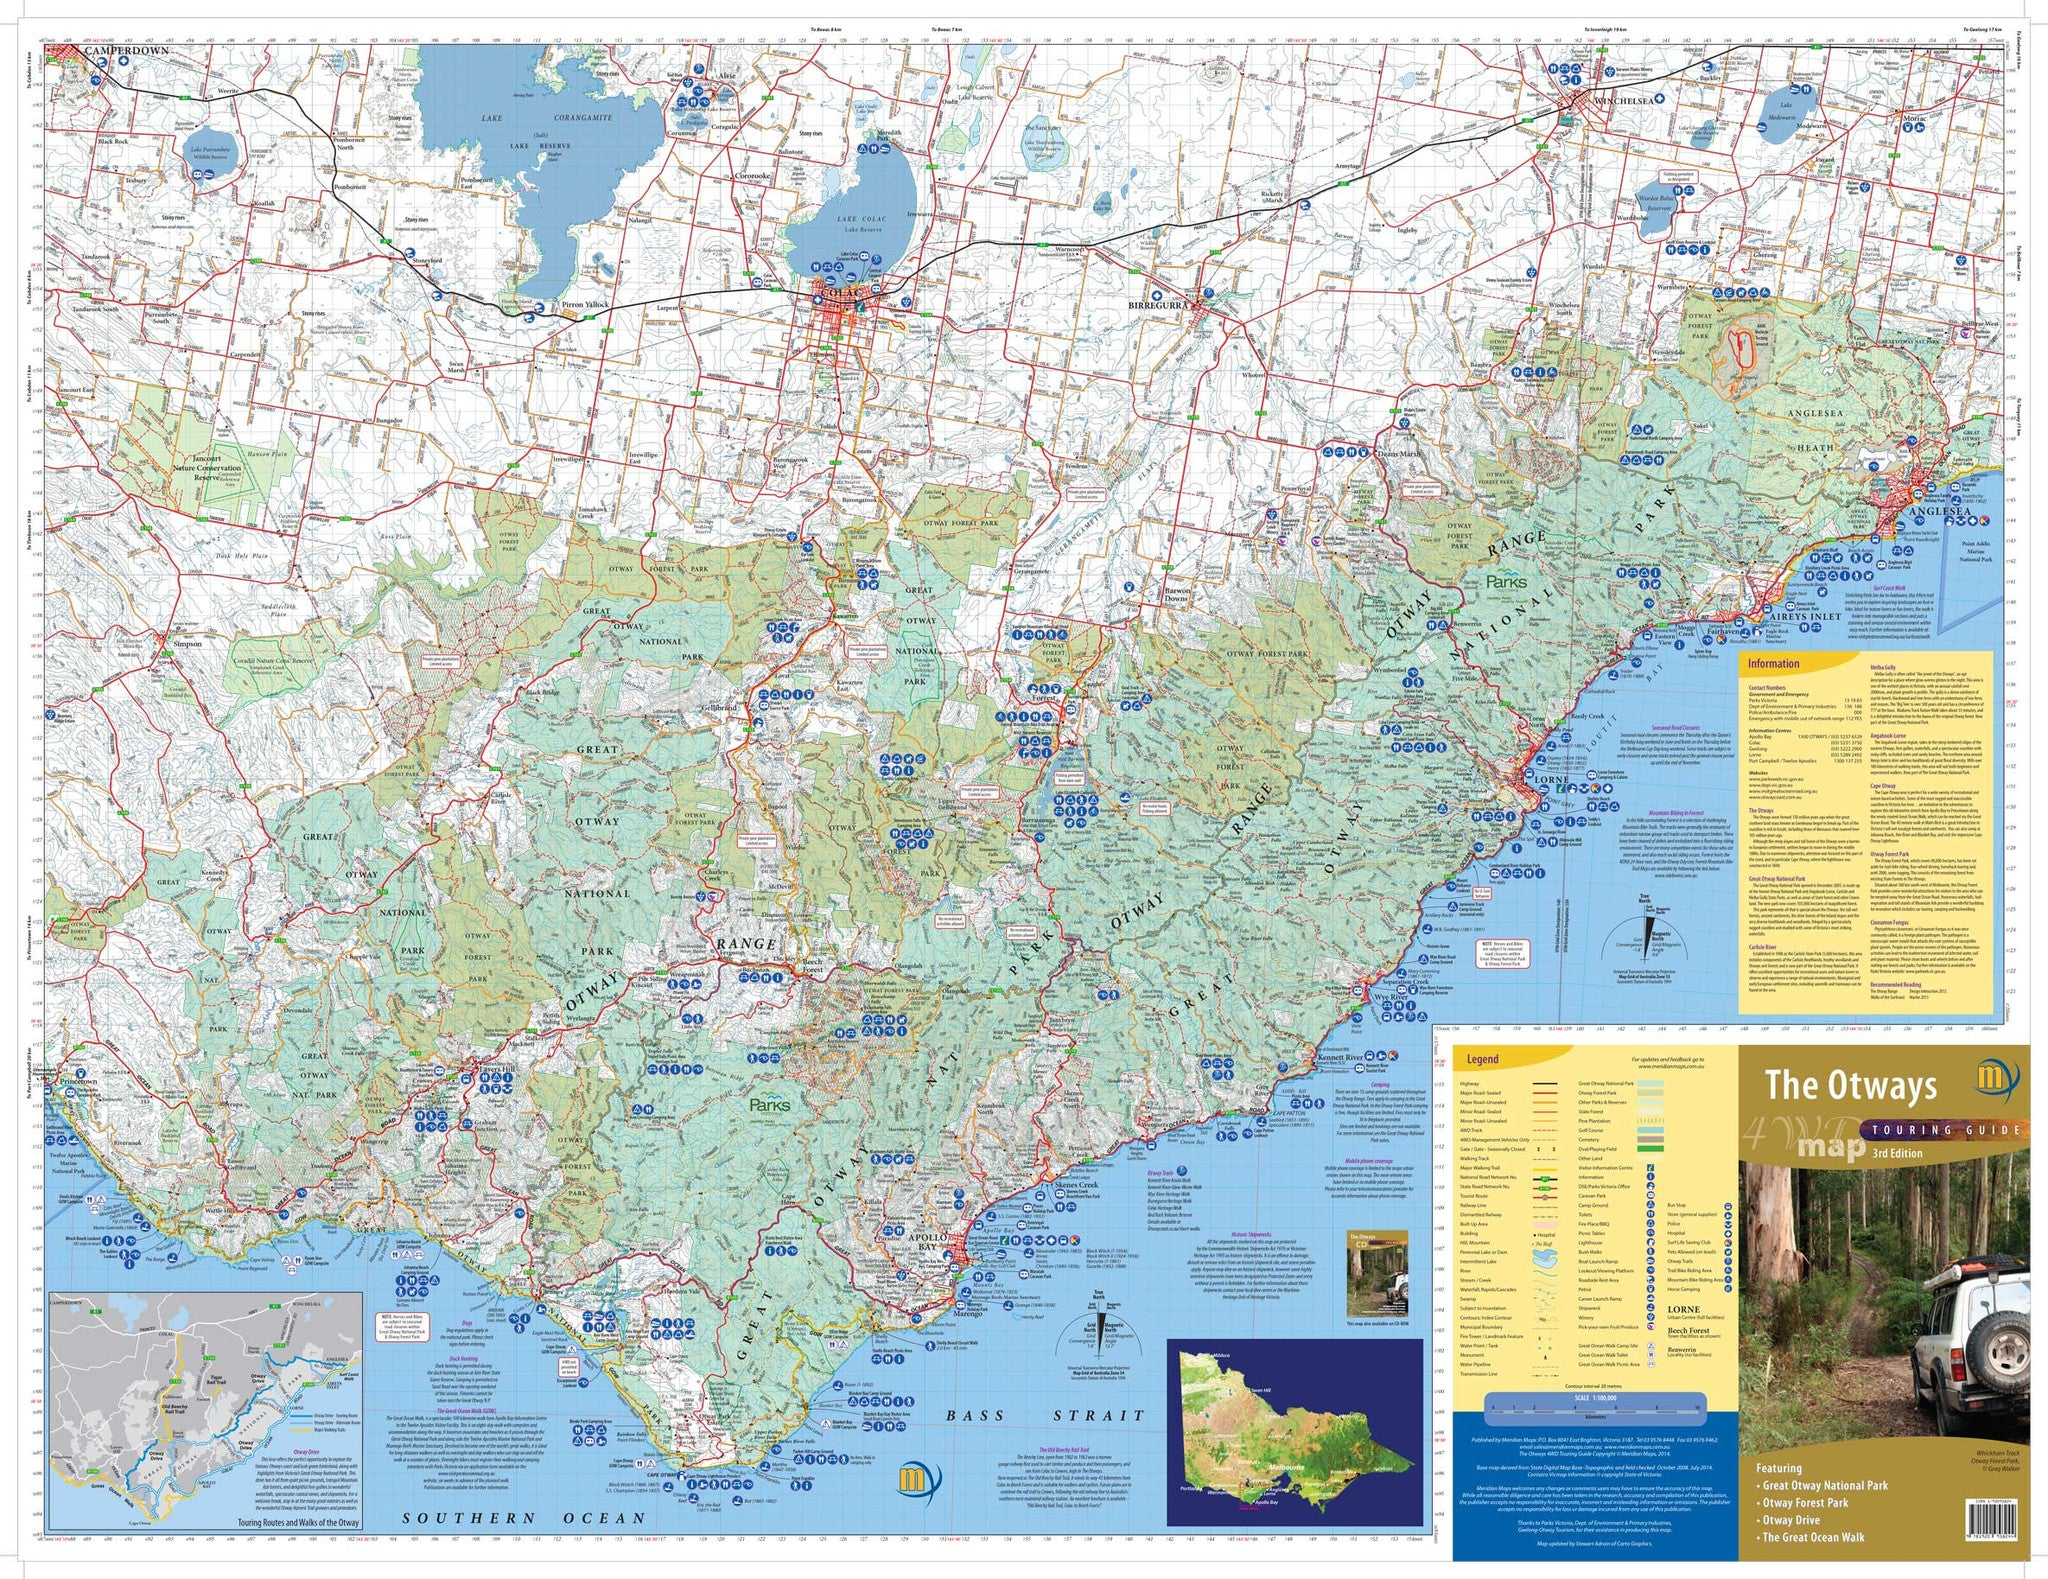 The Otways 4WD Map buy 4WD map of the Otways Mapworld